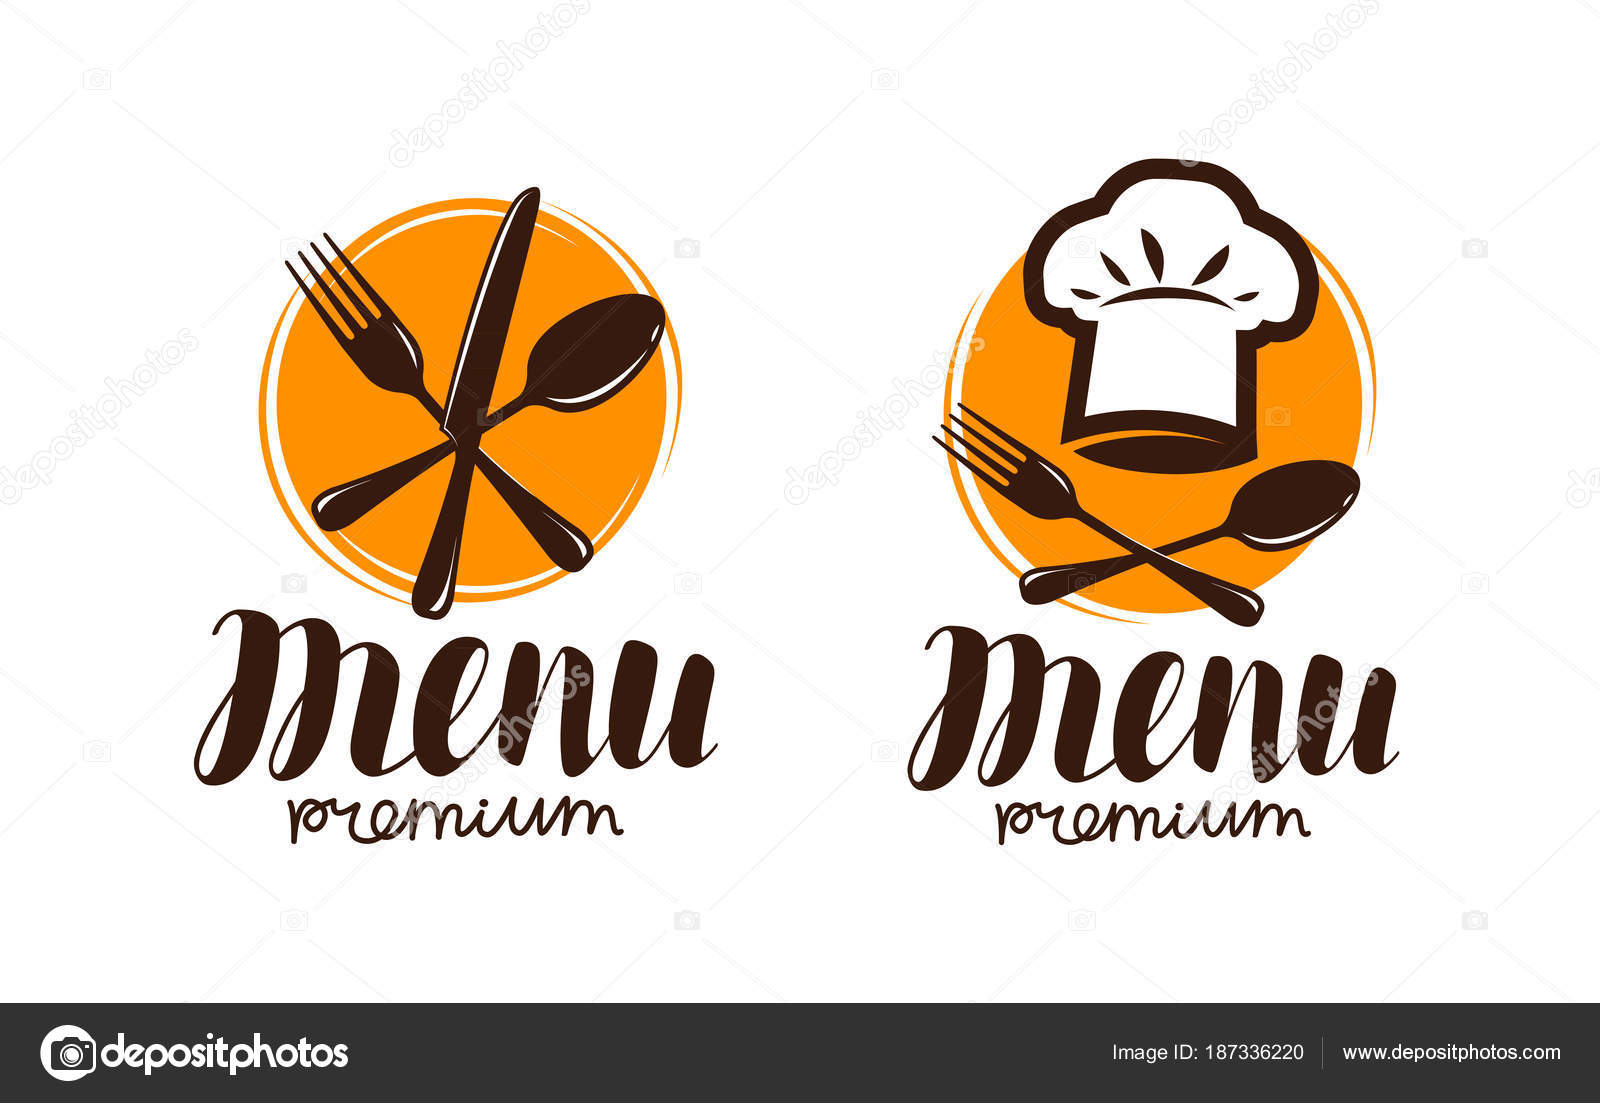 restaurant menu, logo or label. cooking, cuisine concept. vector